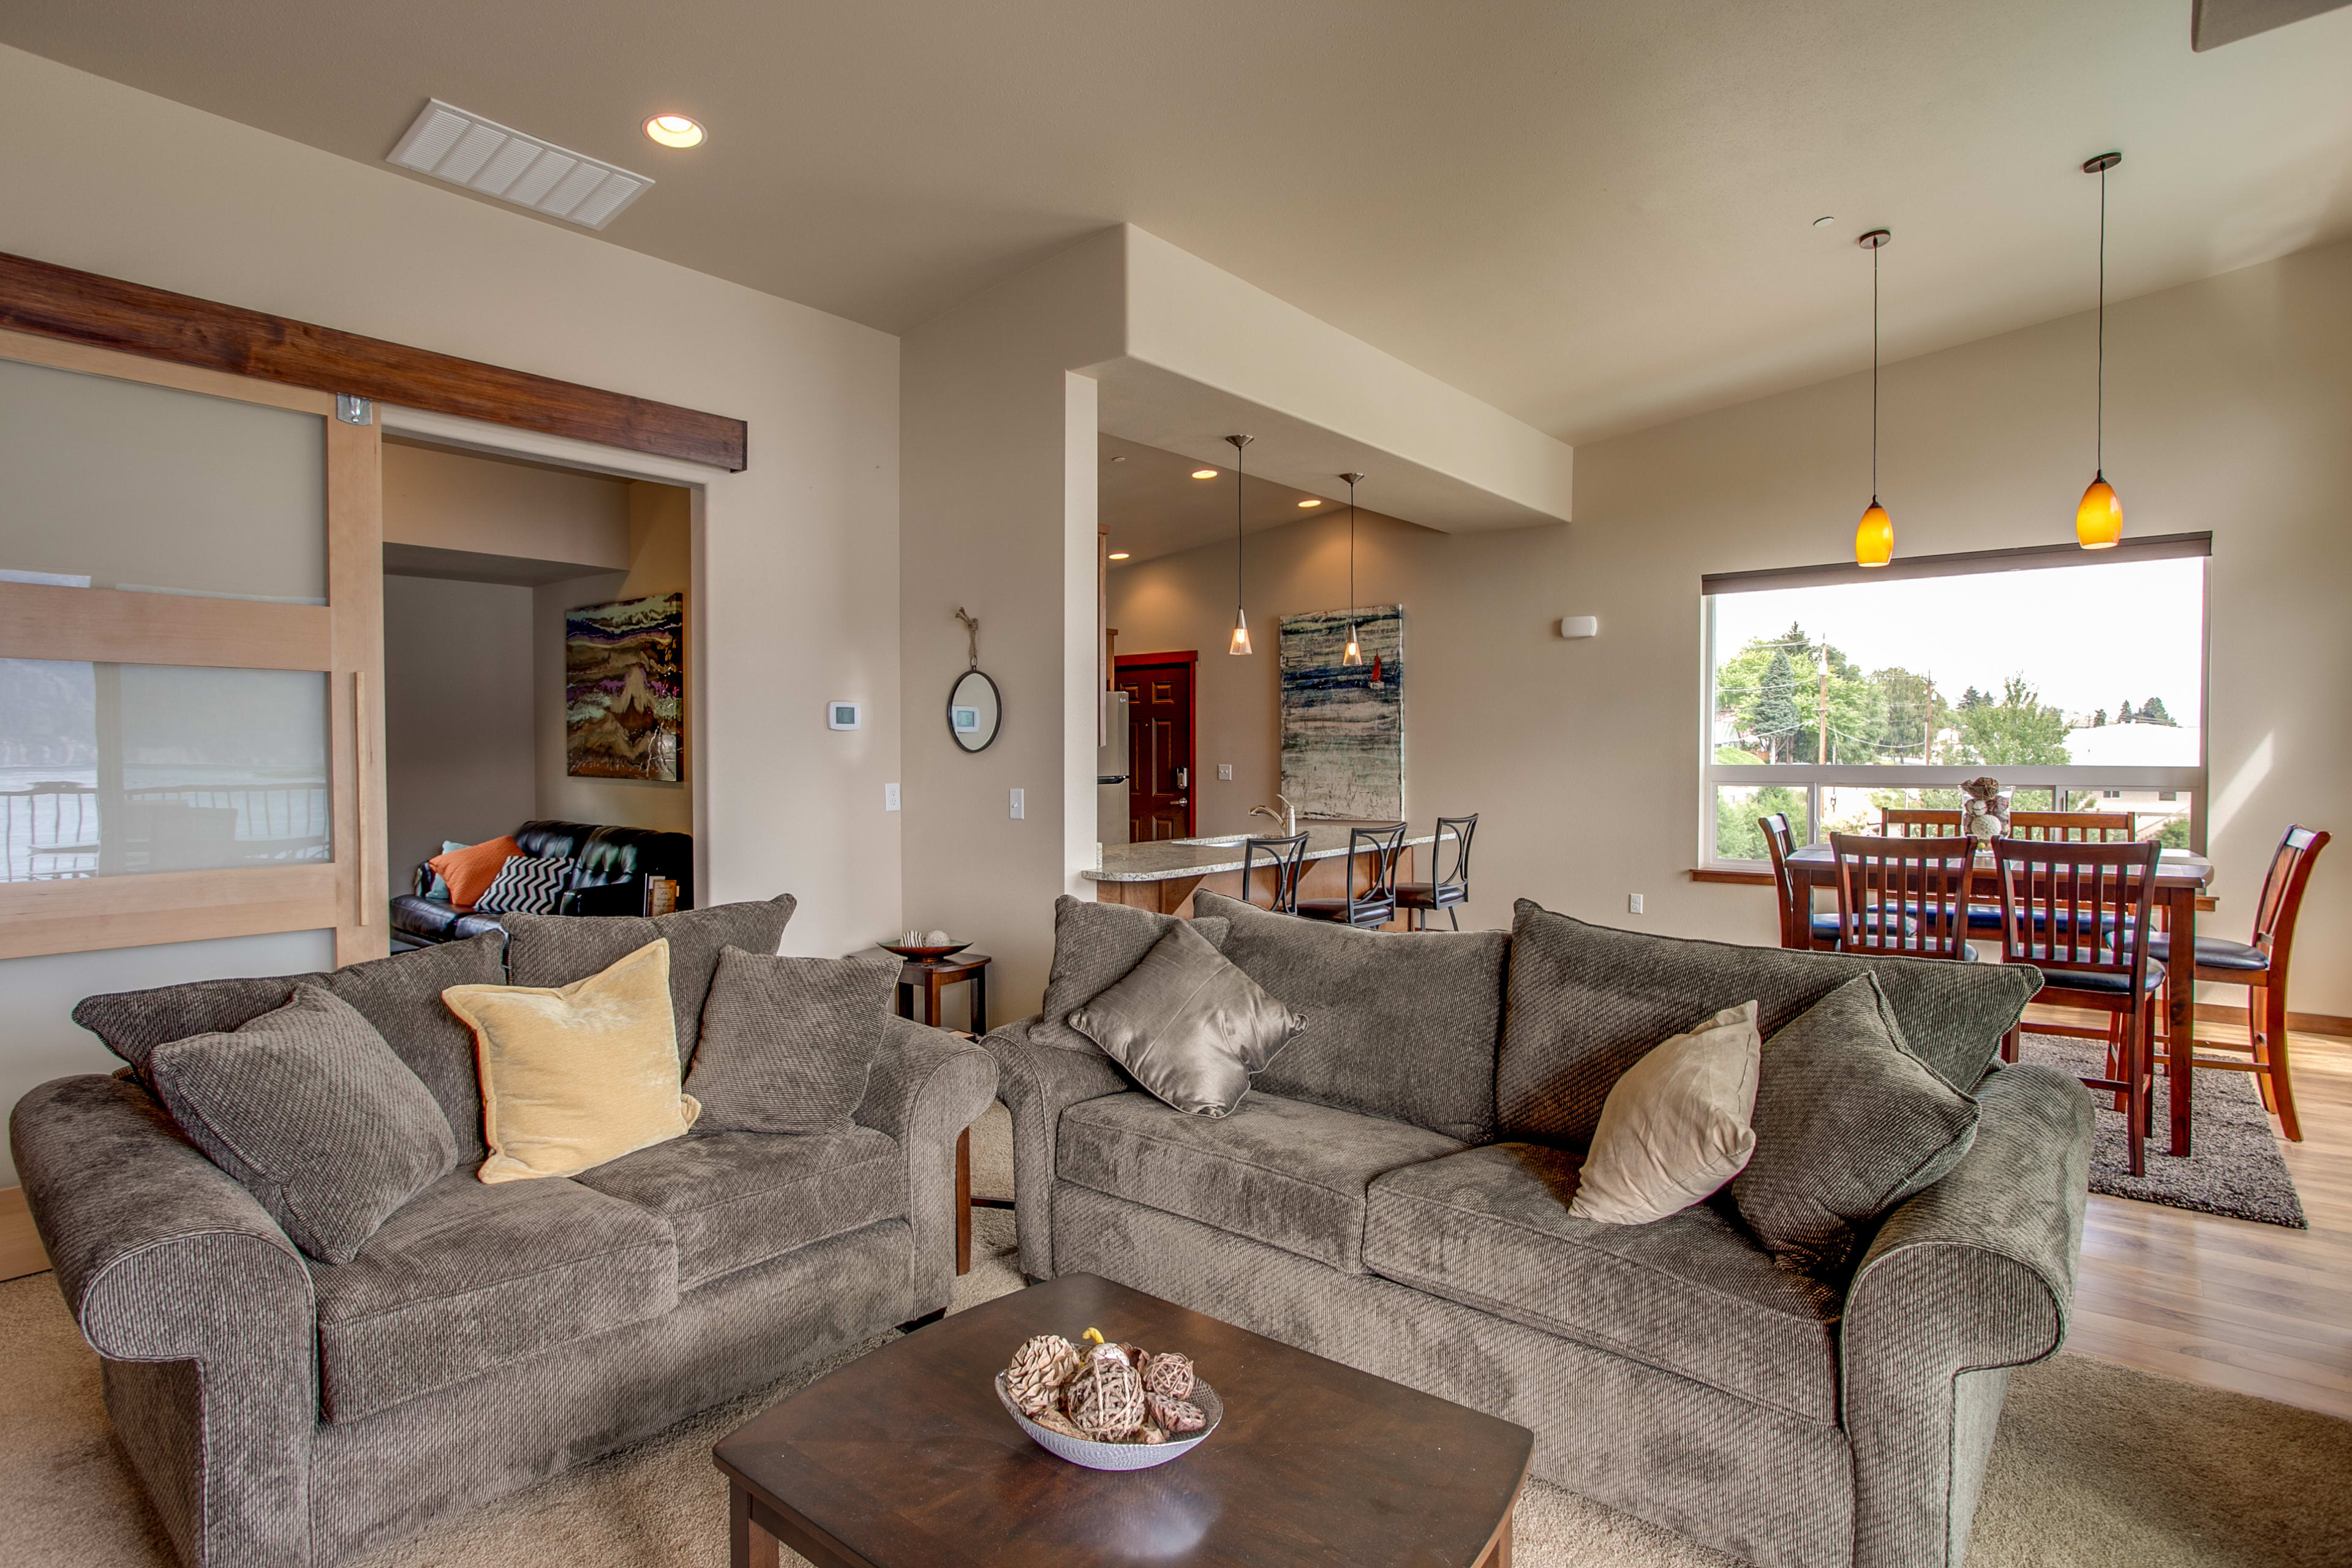 Kick back on the plush living room couches.